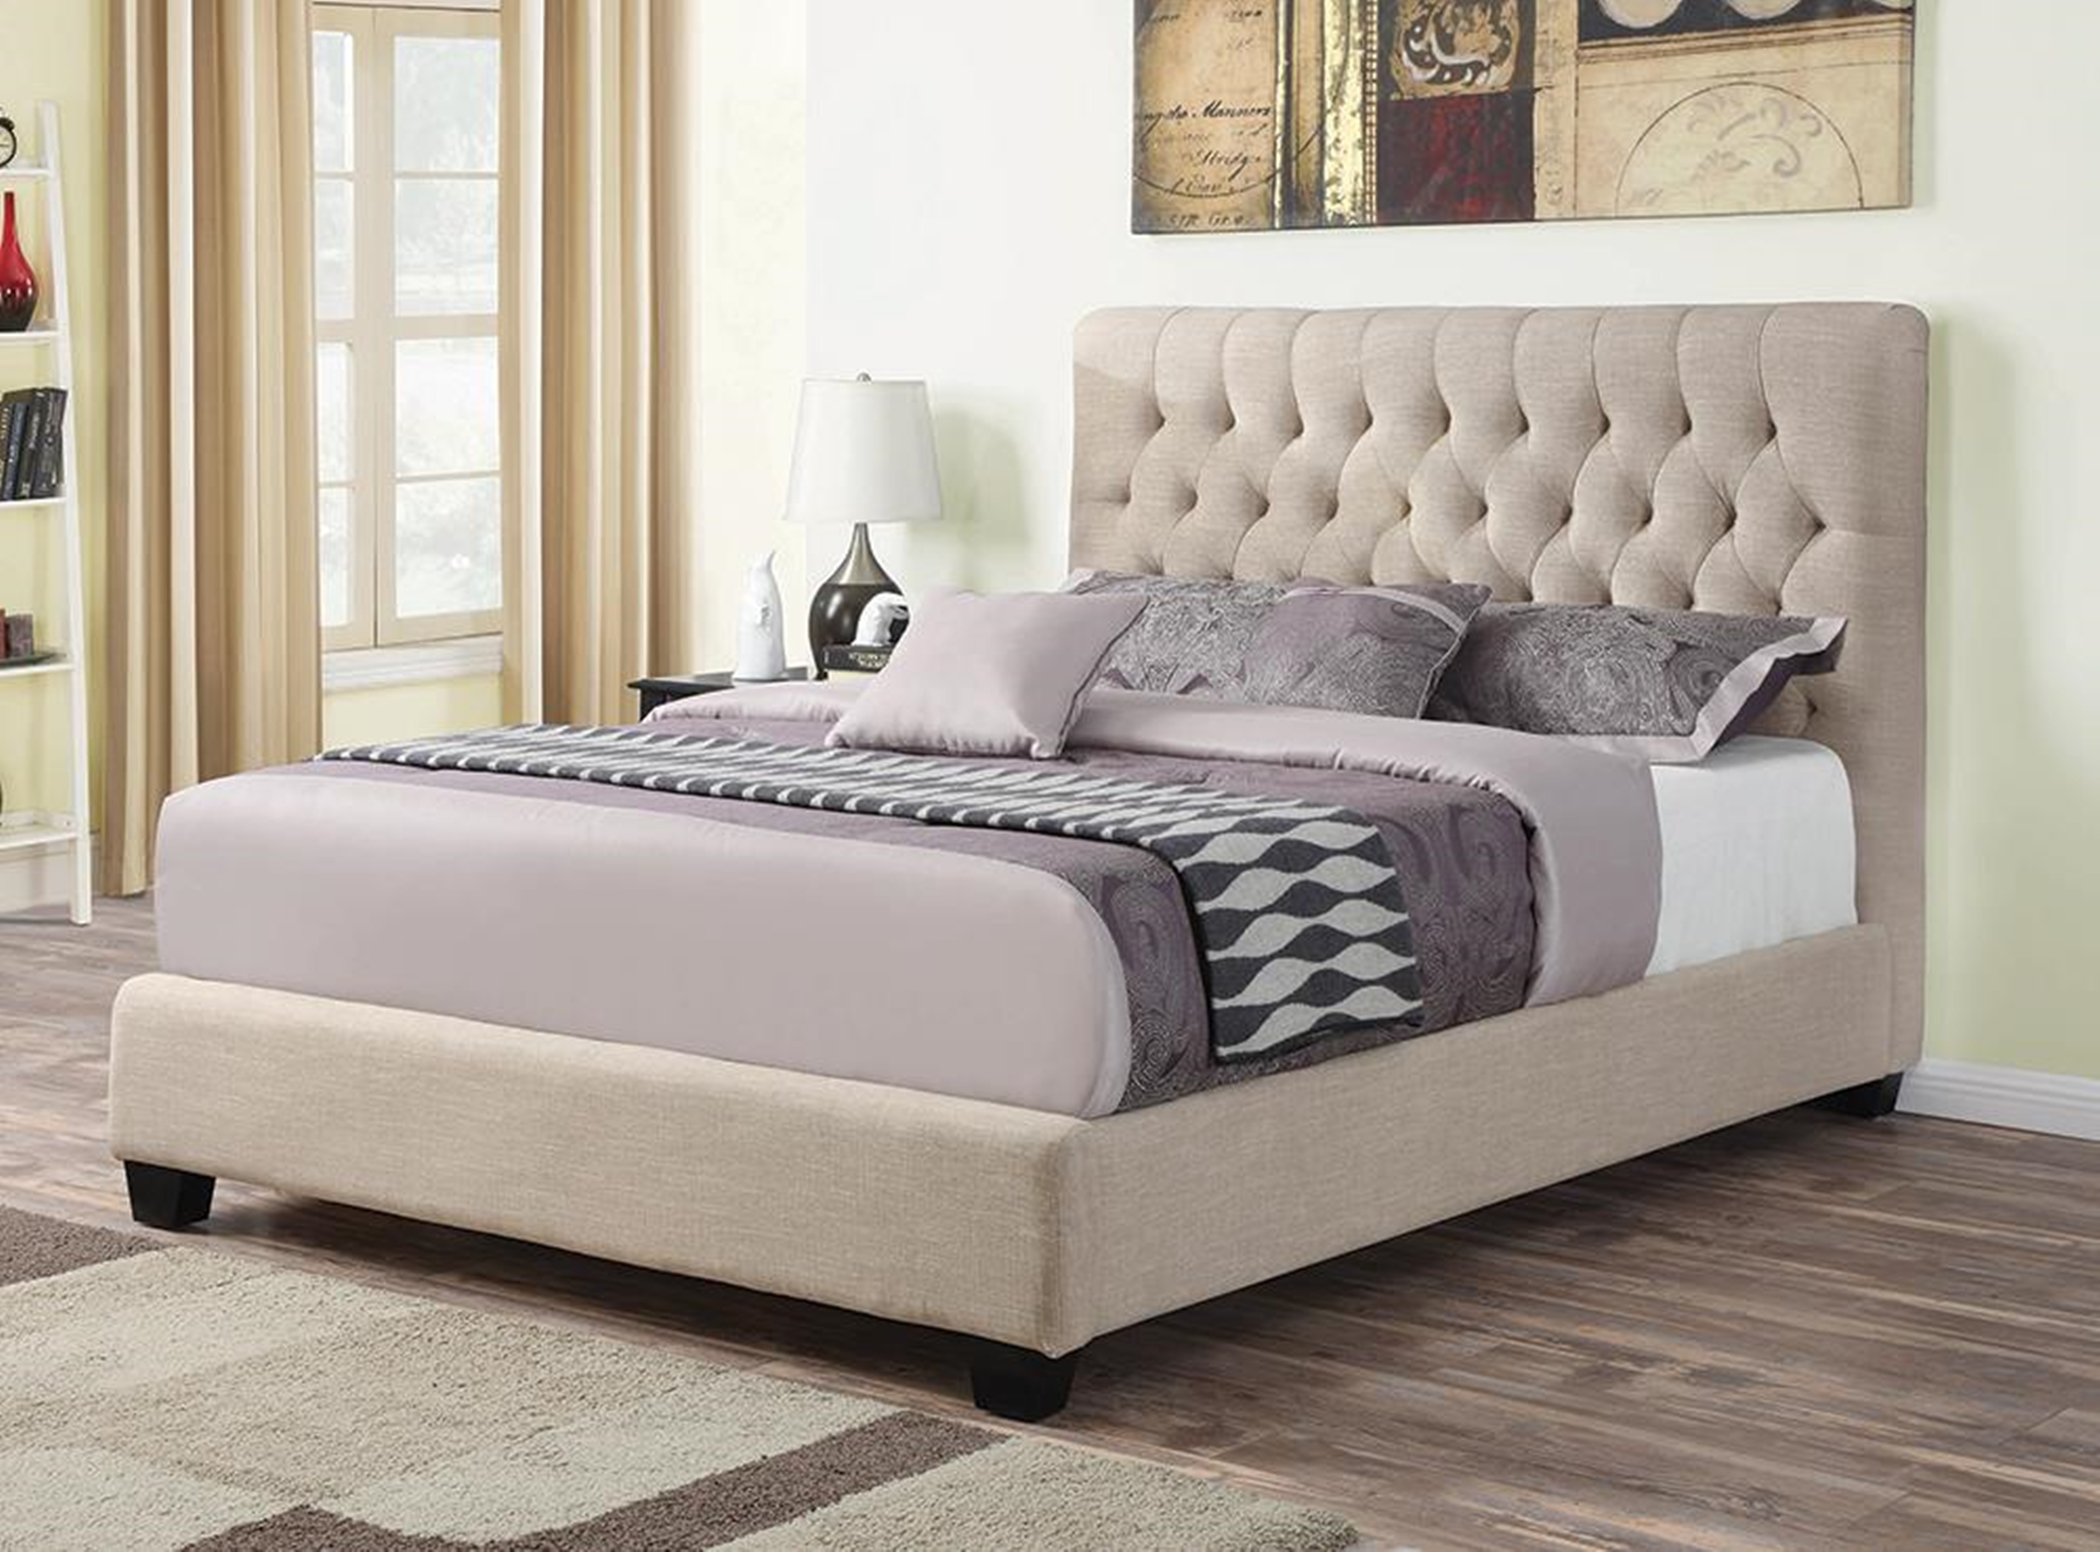 Chloe Oatmeal Upholstered E. King Bed